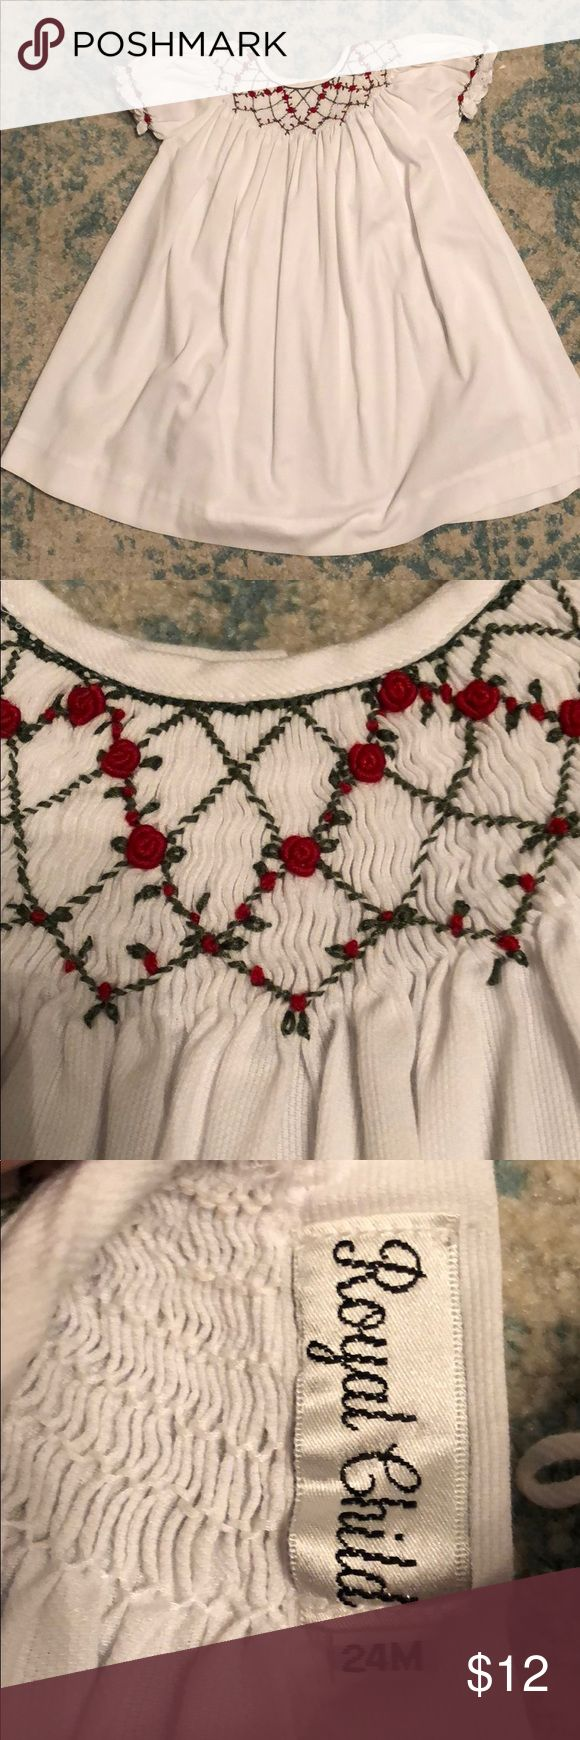 Girls smocked dress size 24 months Girls white smocked dress with red roses and green accents size 24 months. Royal Child Dresses Formal